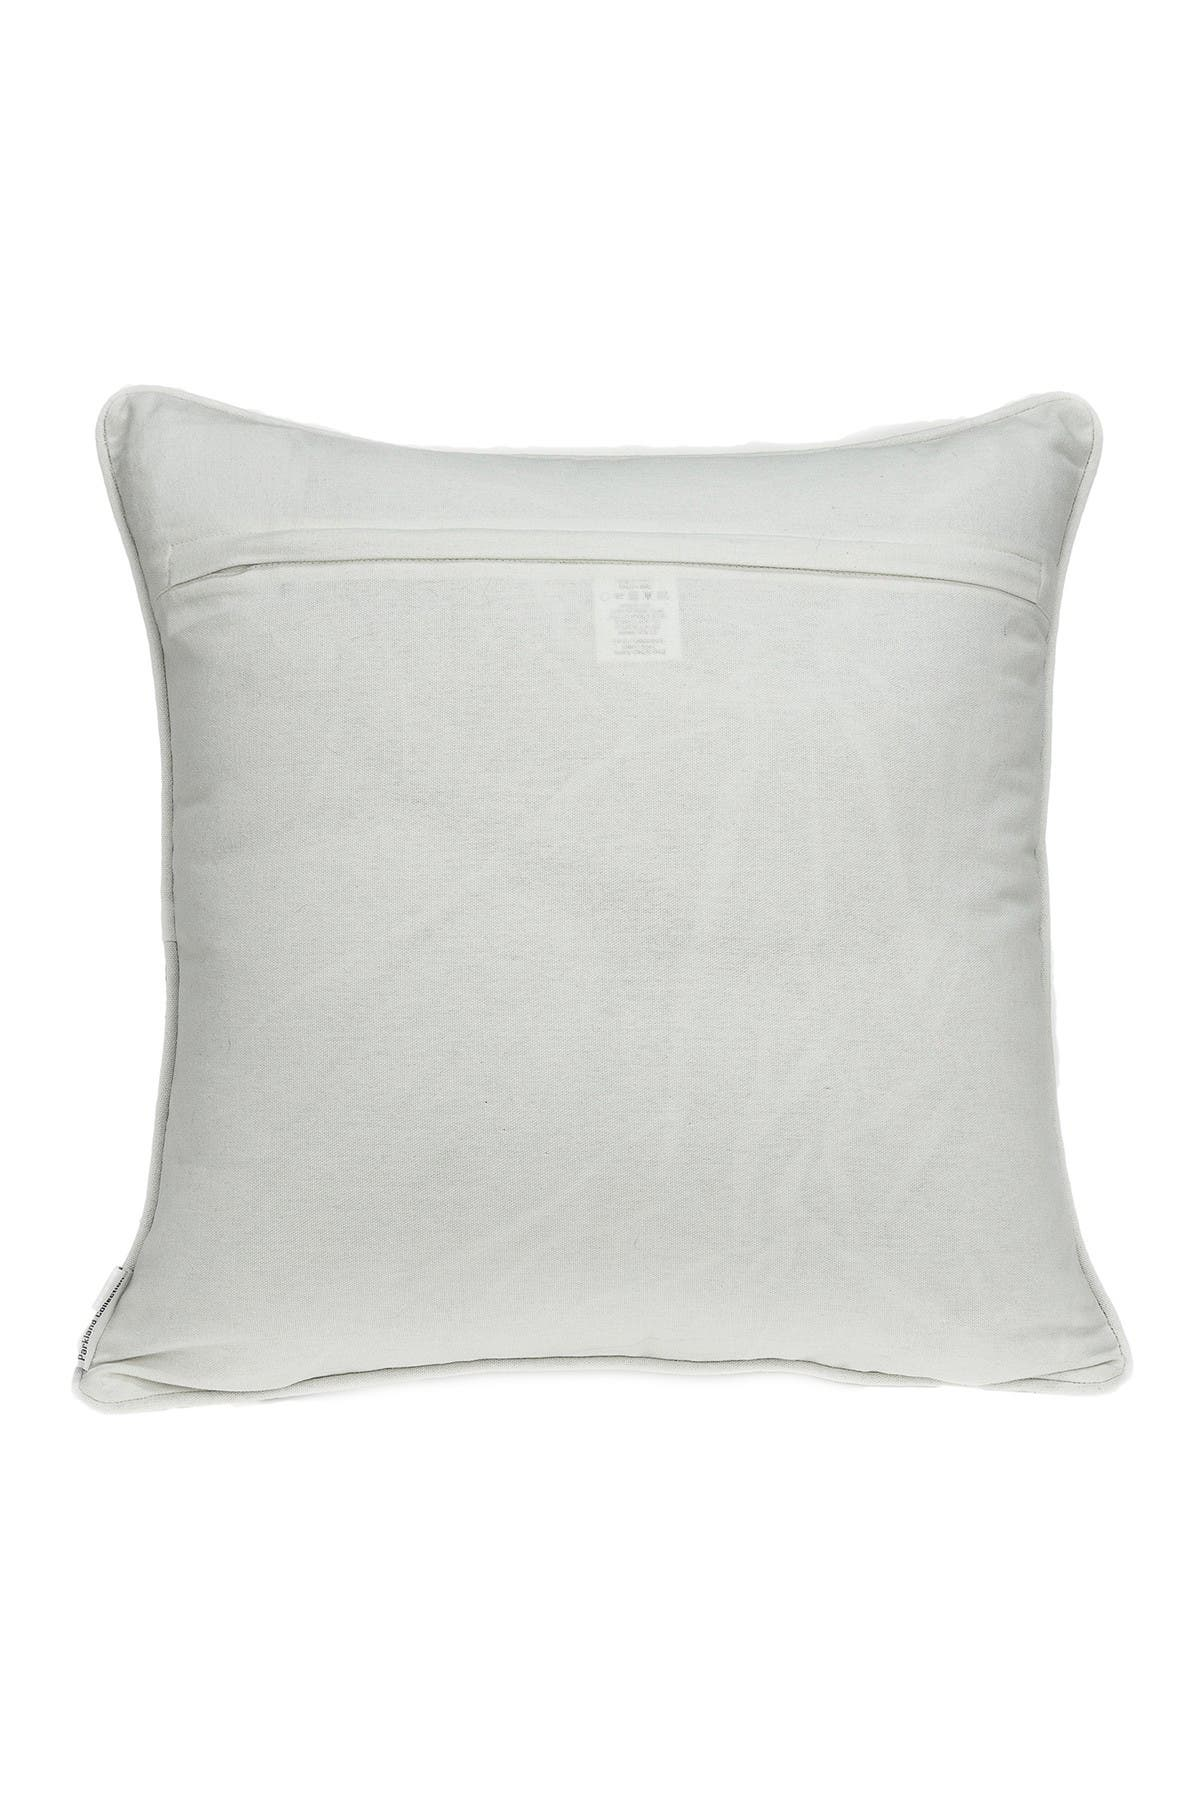 """Image of Parkland Collection Capella Transitional Pillow - 20"""" x 20"""" - Beige"""